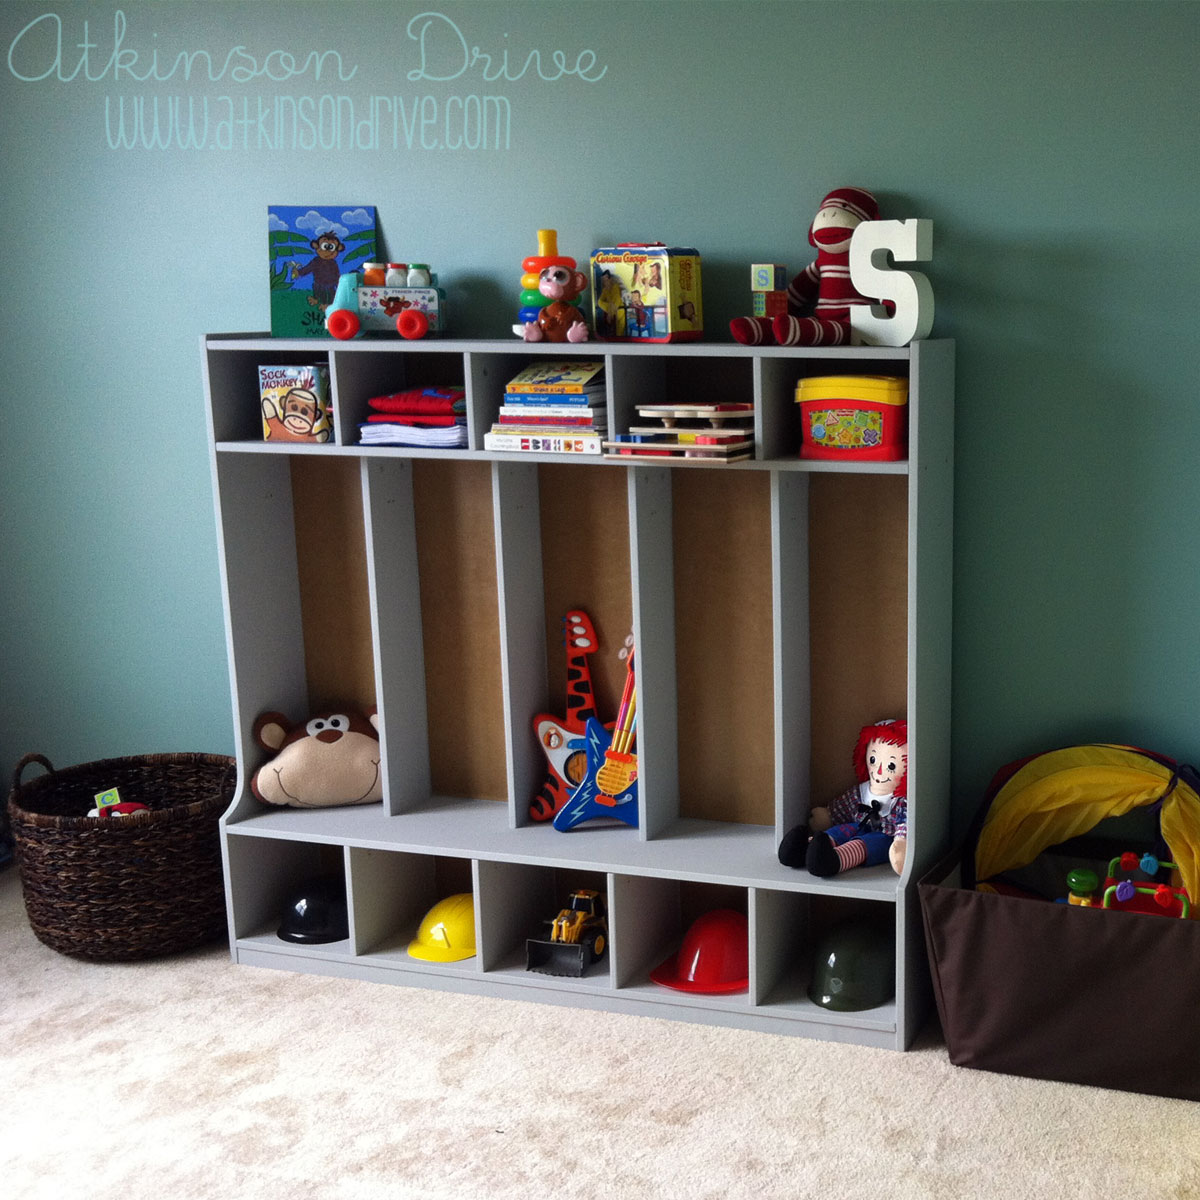 Toddler Locker Organization System Via Atkinson Drive Toy Storage Cubbies,  Atkinson Drive